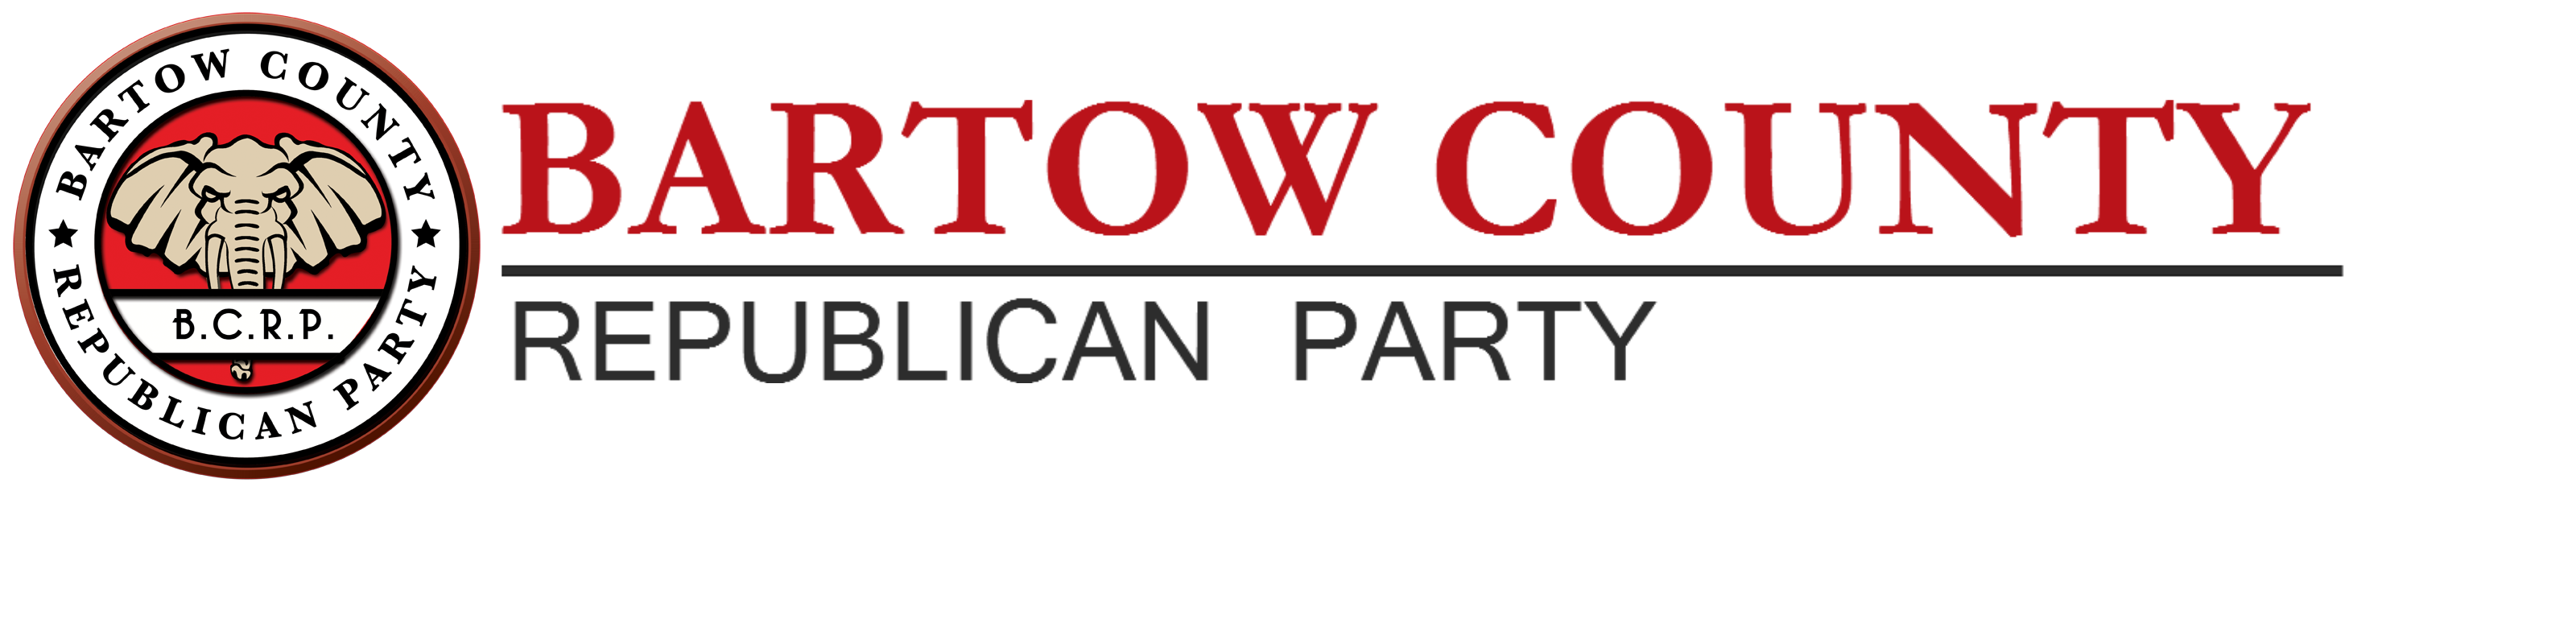 Bartow County Republican Party